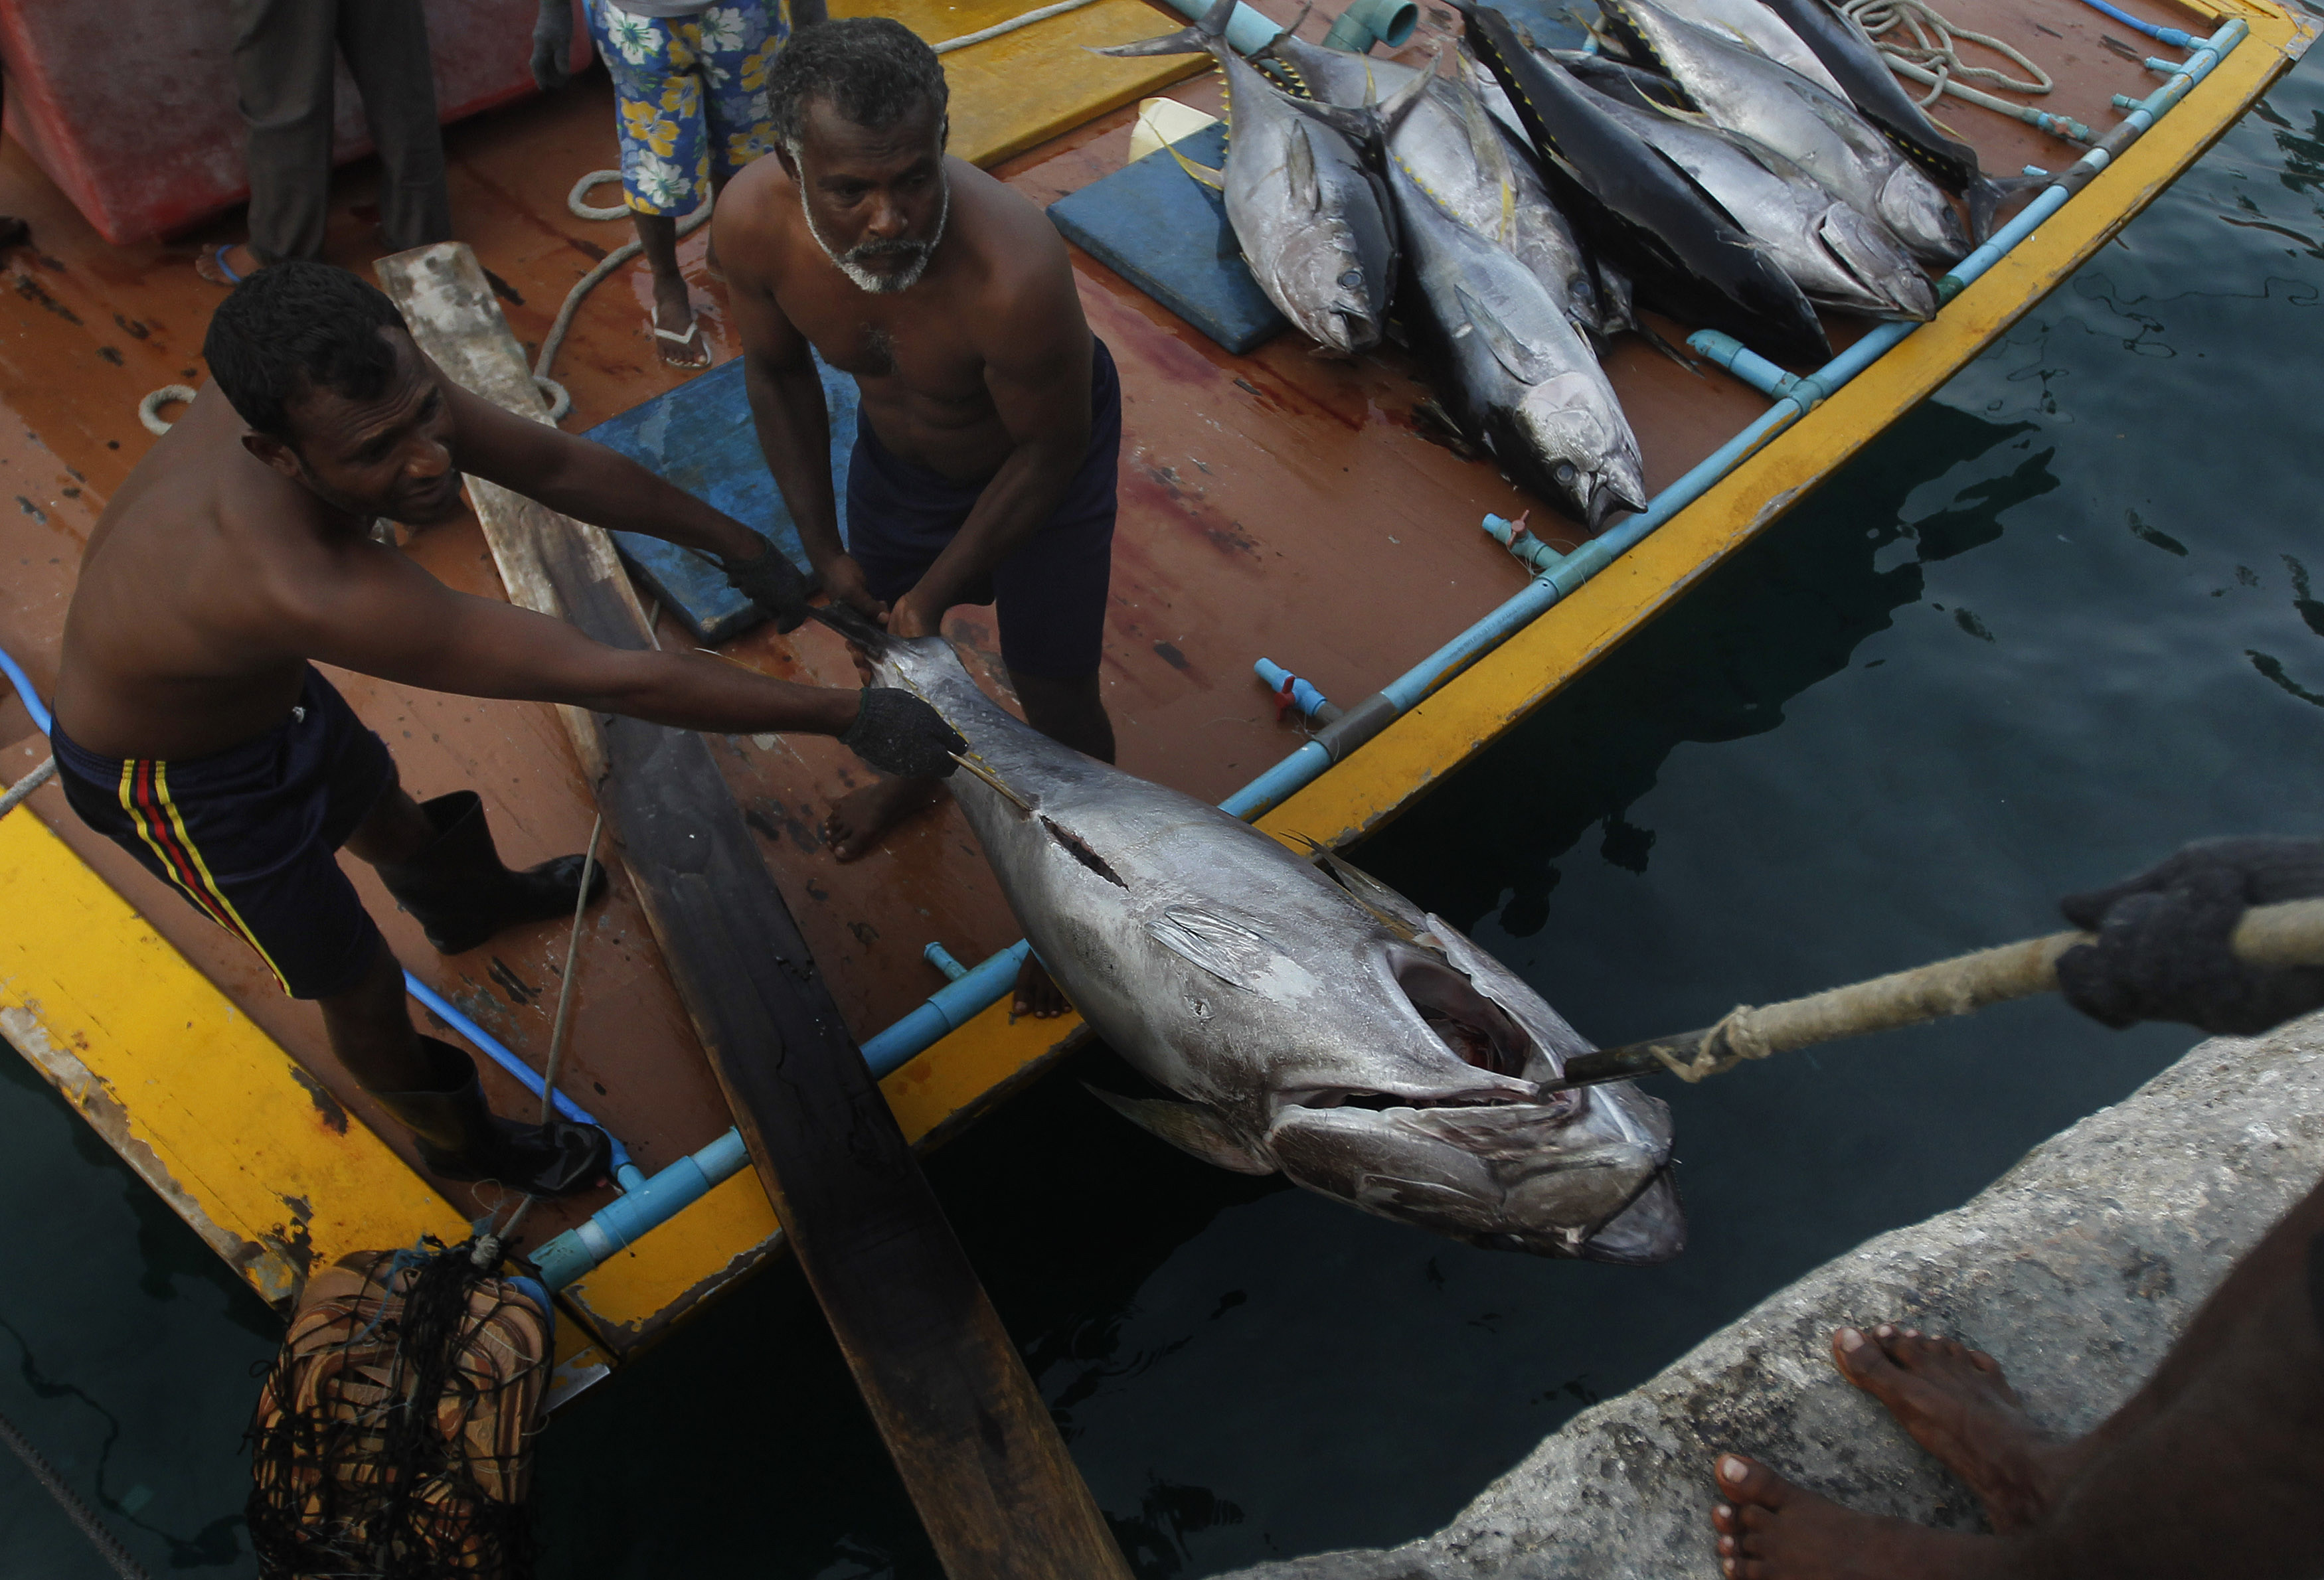 Fishermen in the Maldives, one of the small island developing states liable to be hit hardest by climate change.